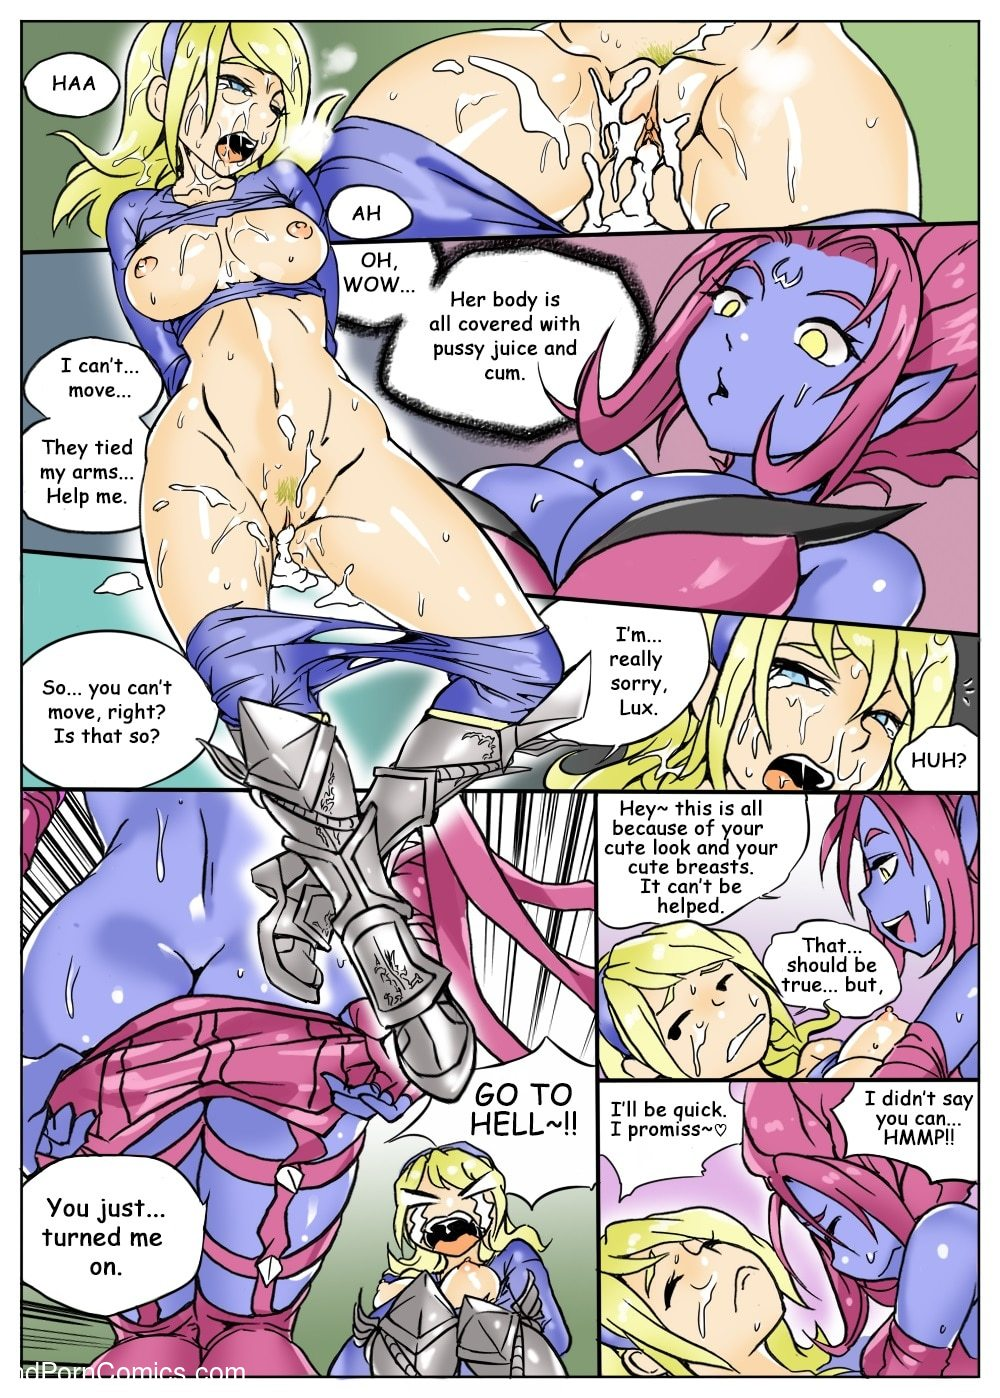 Kimmundo- Lux gets Ganked16 free sex comic